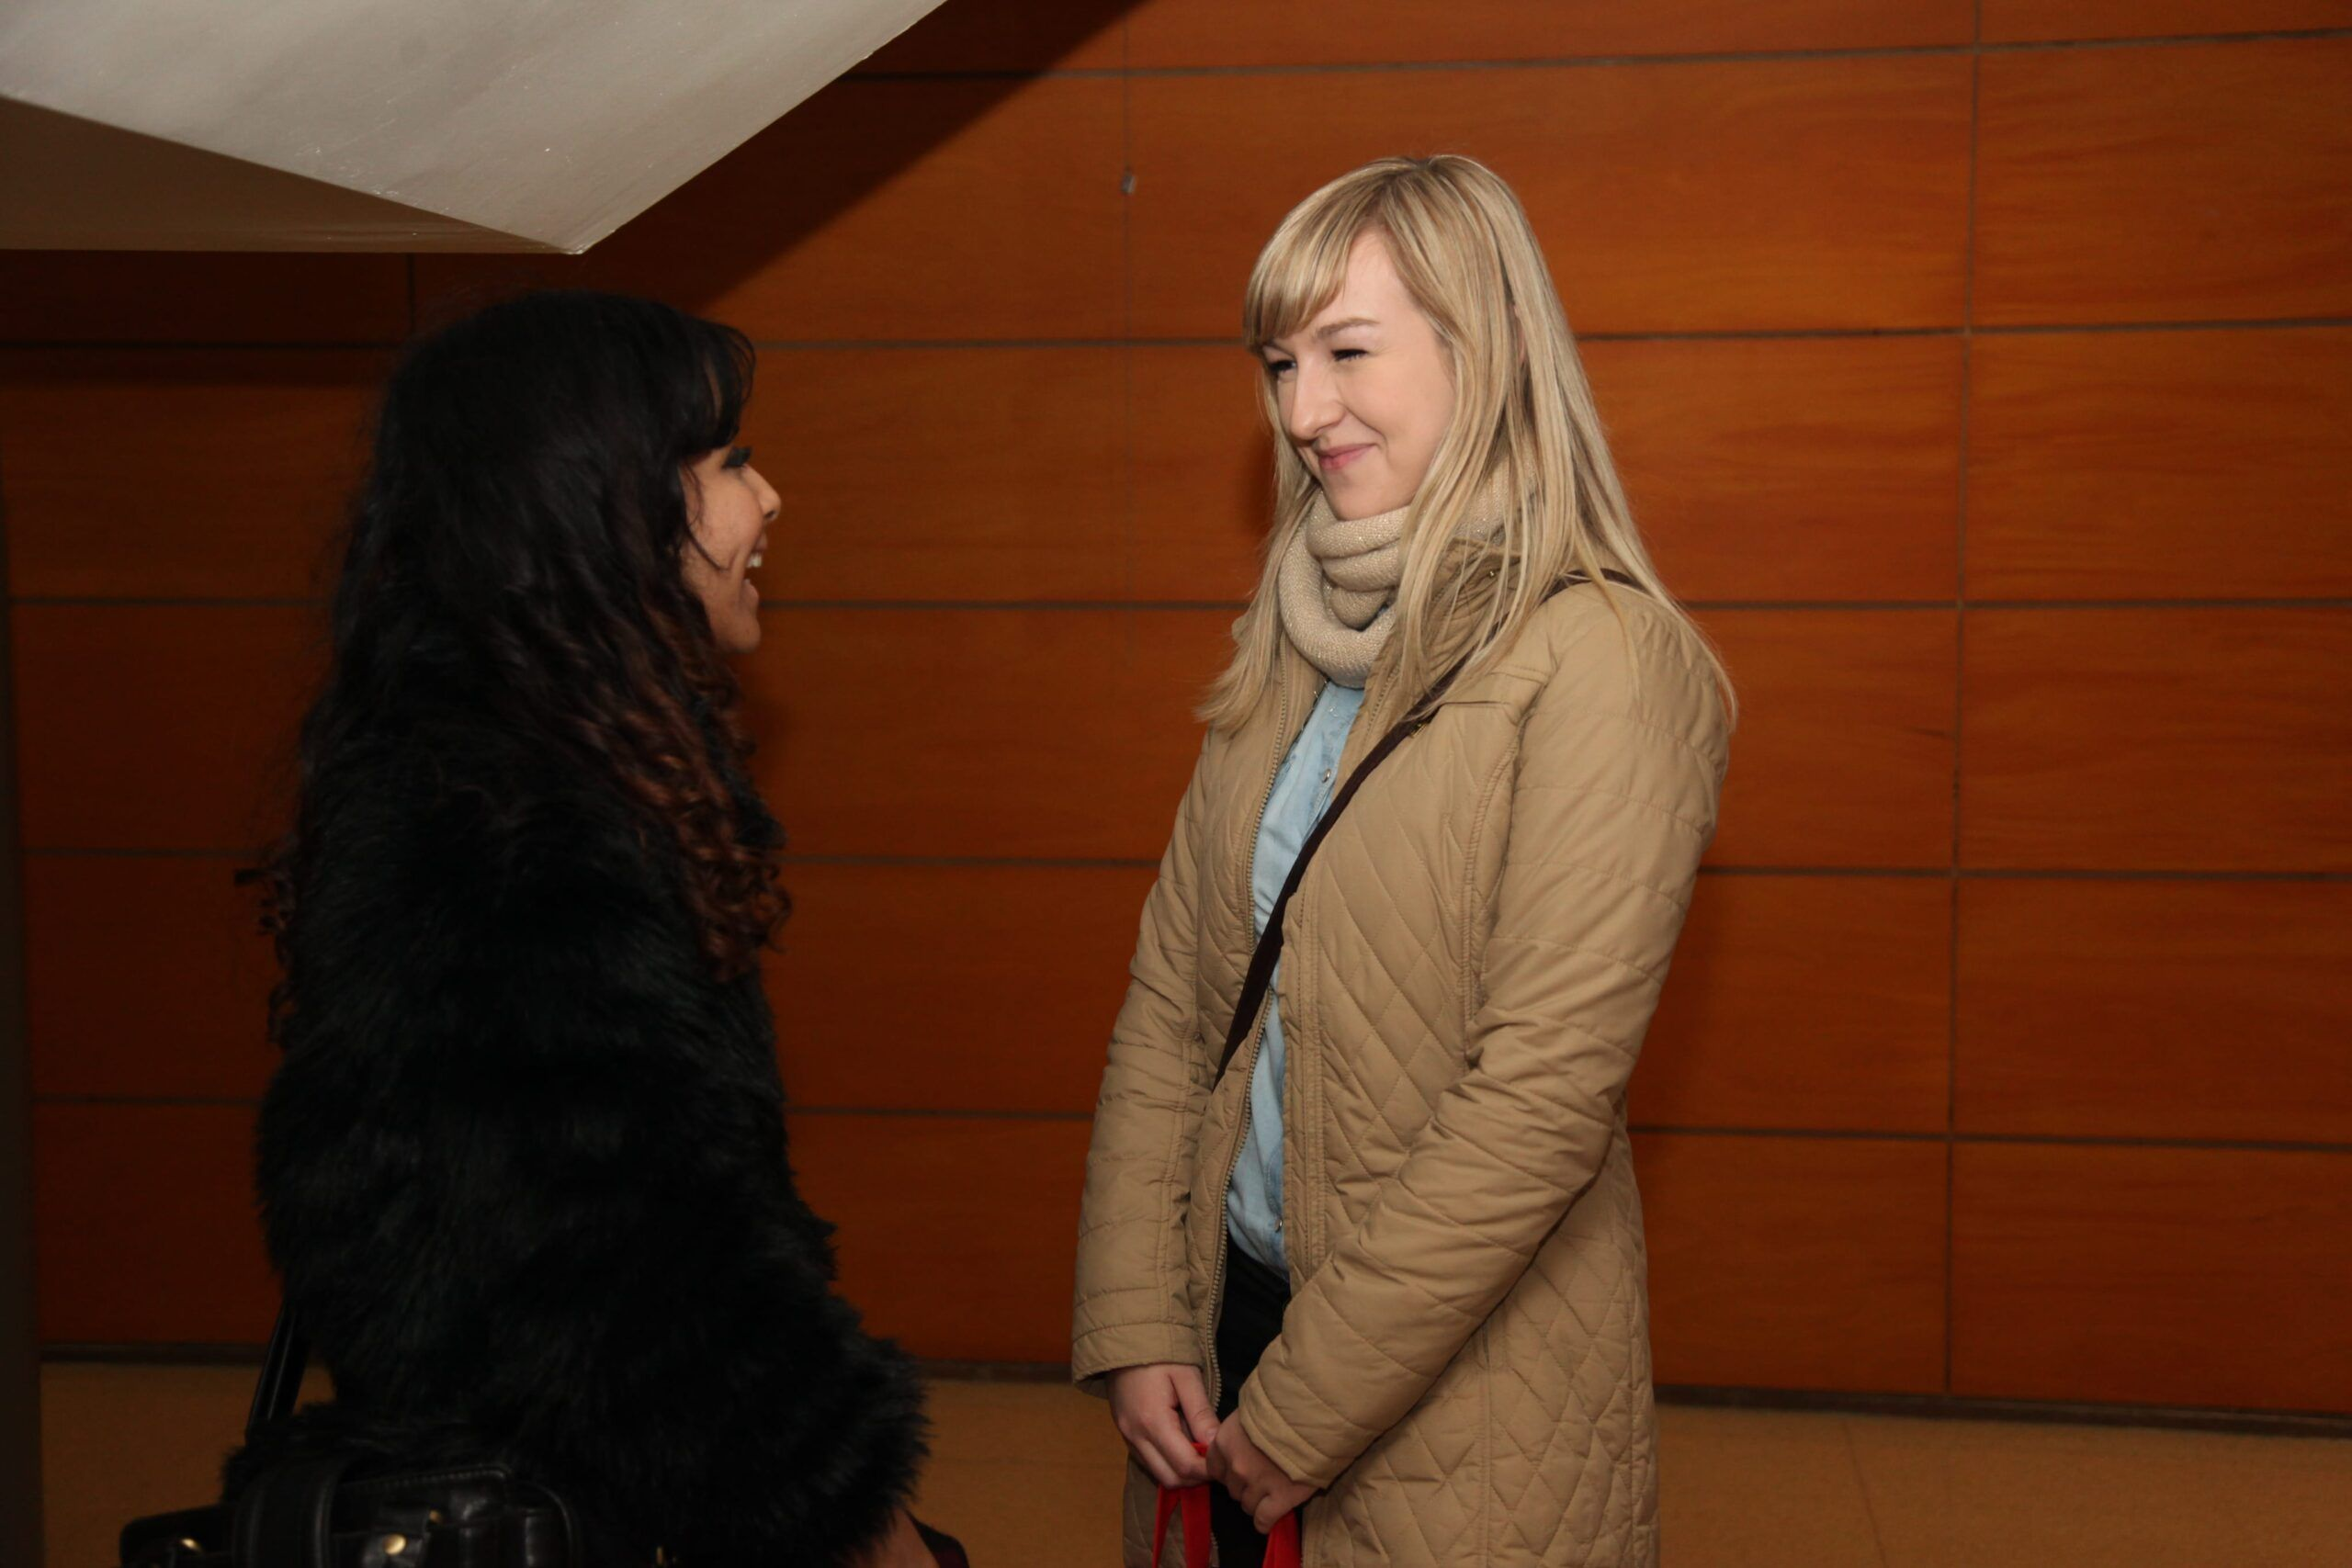 Yeslin from the International Relations Office at the CEU-UCH speaking to Justyna, an Erasmus student from Poland.